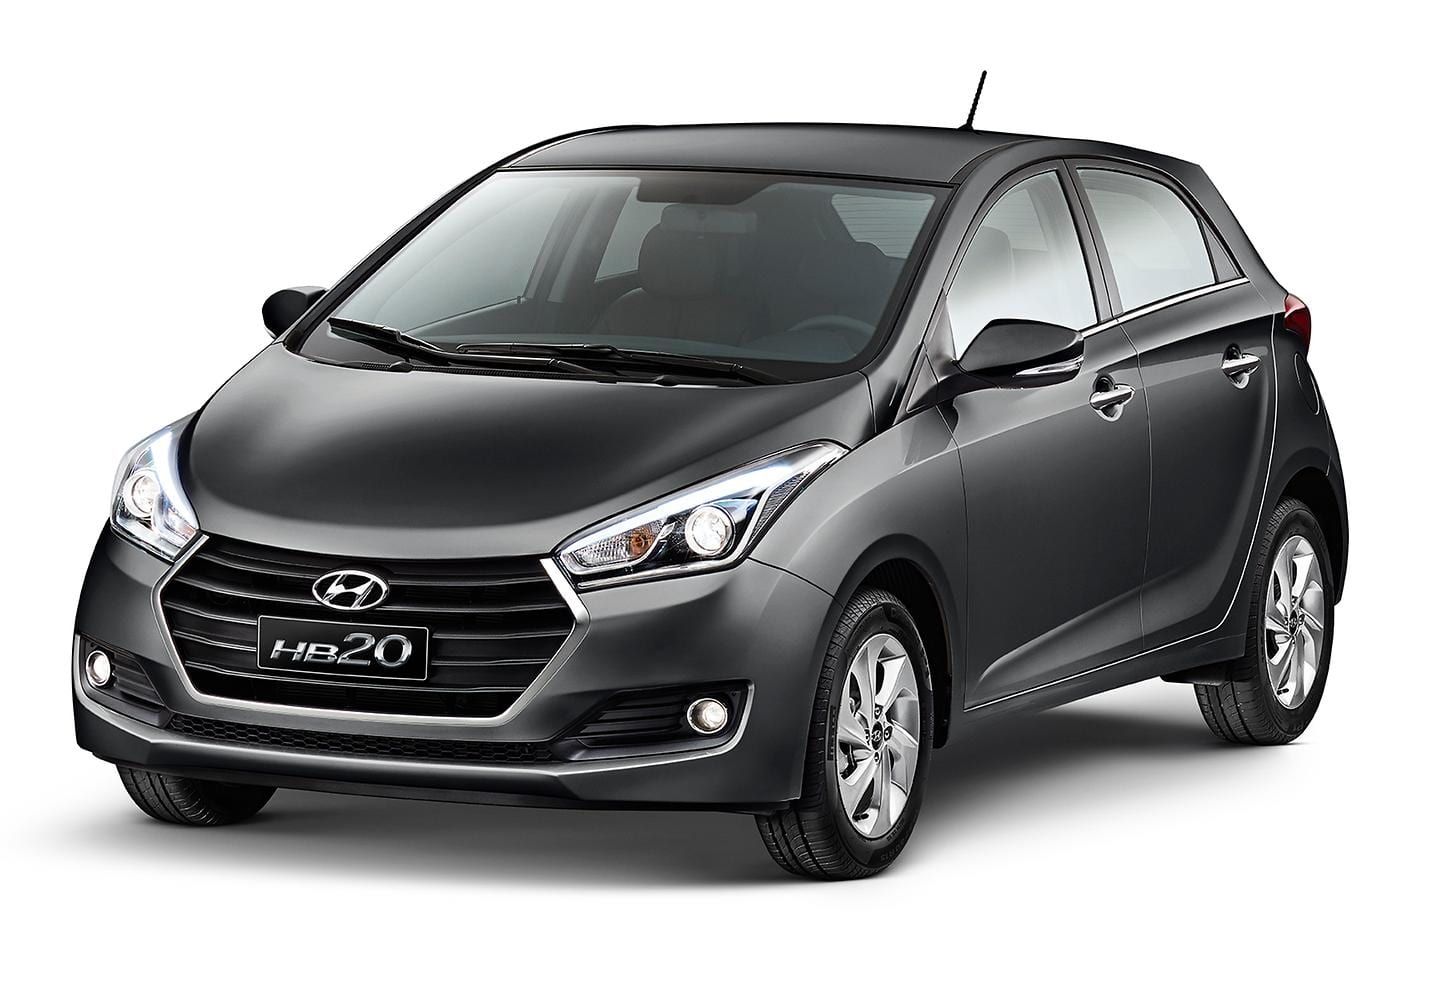 Hyundai Motor unveils refreshed HB20 for Brazil